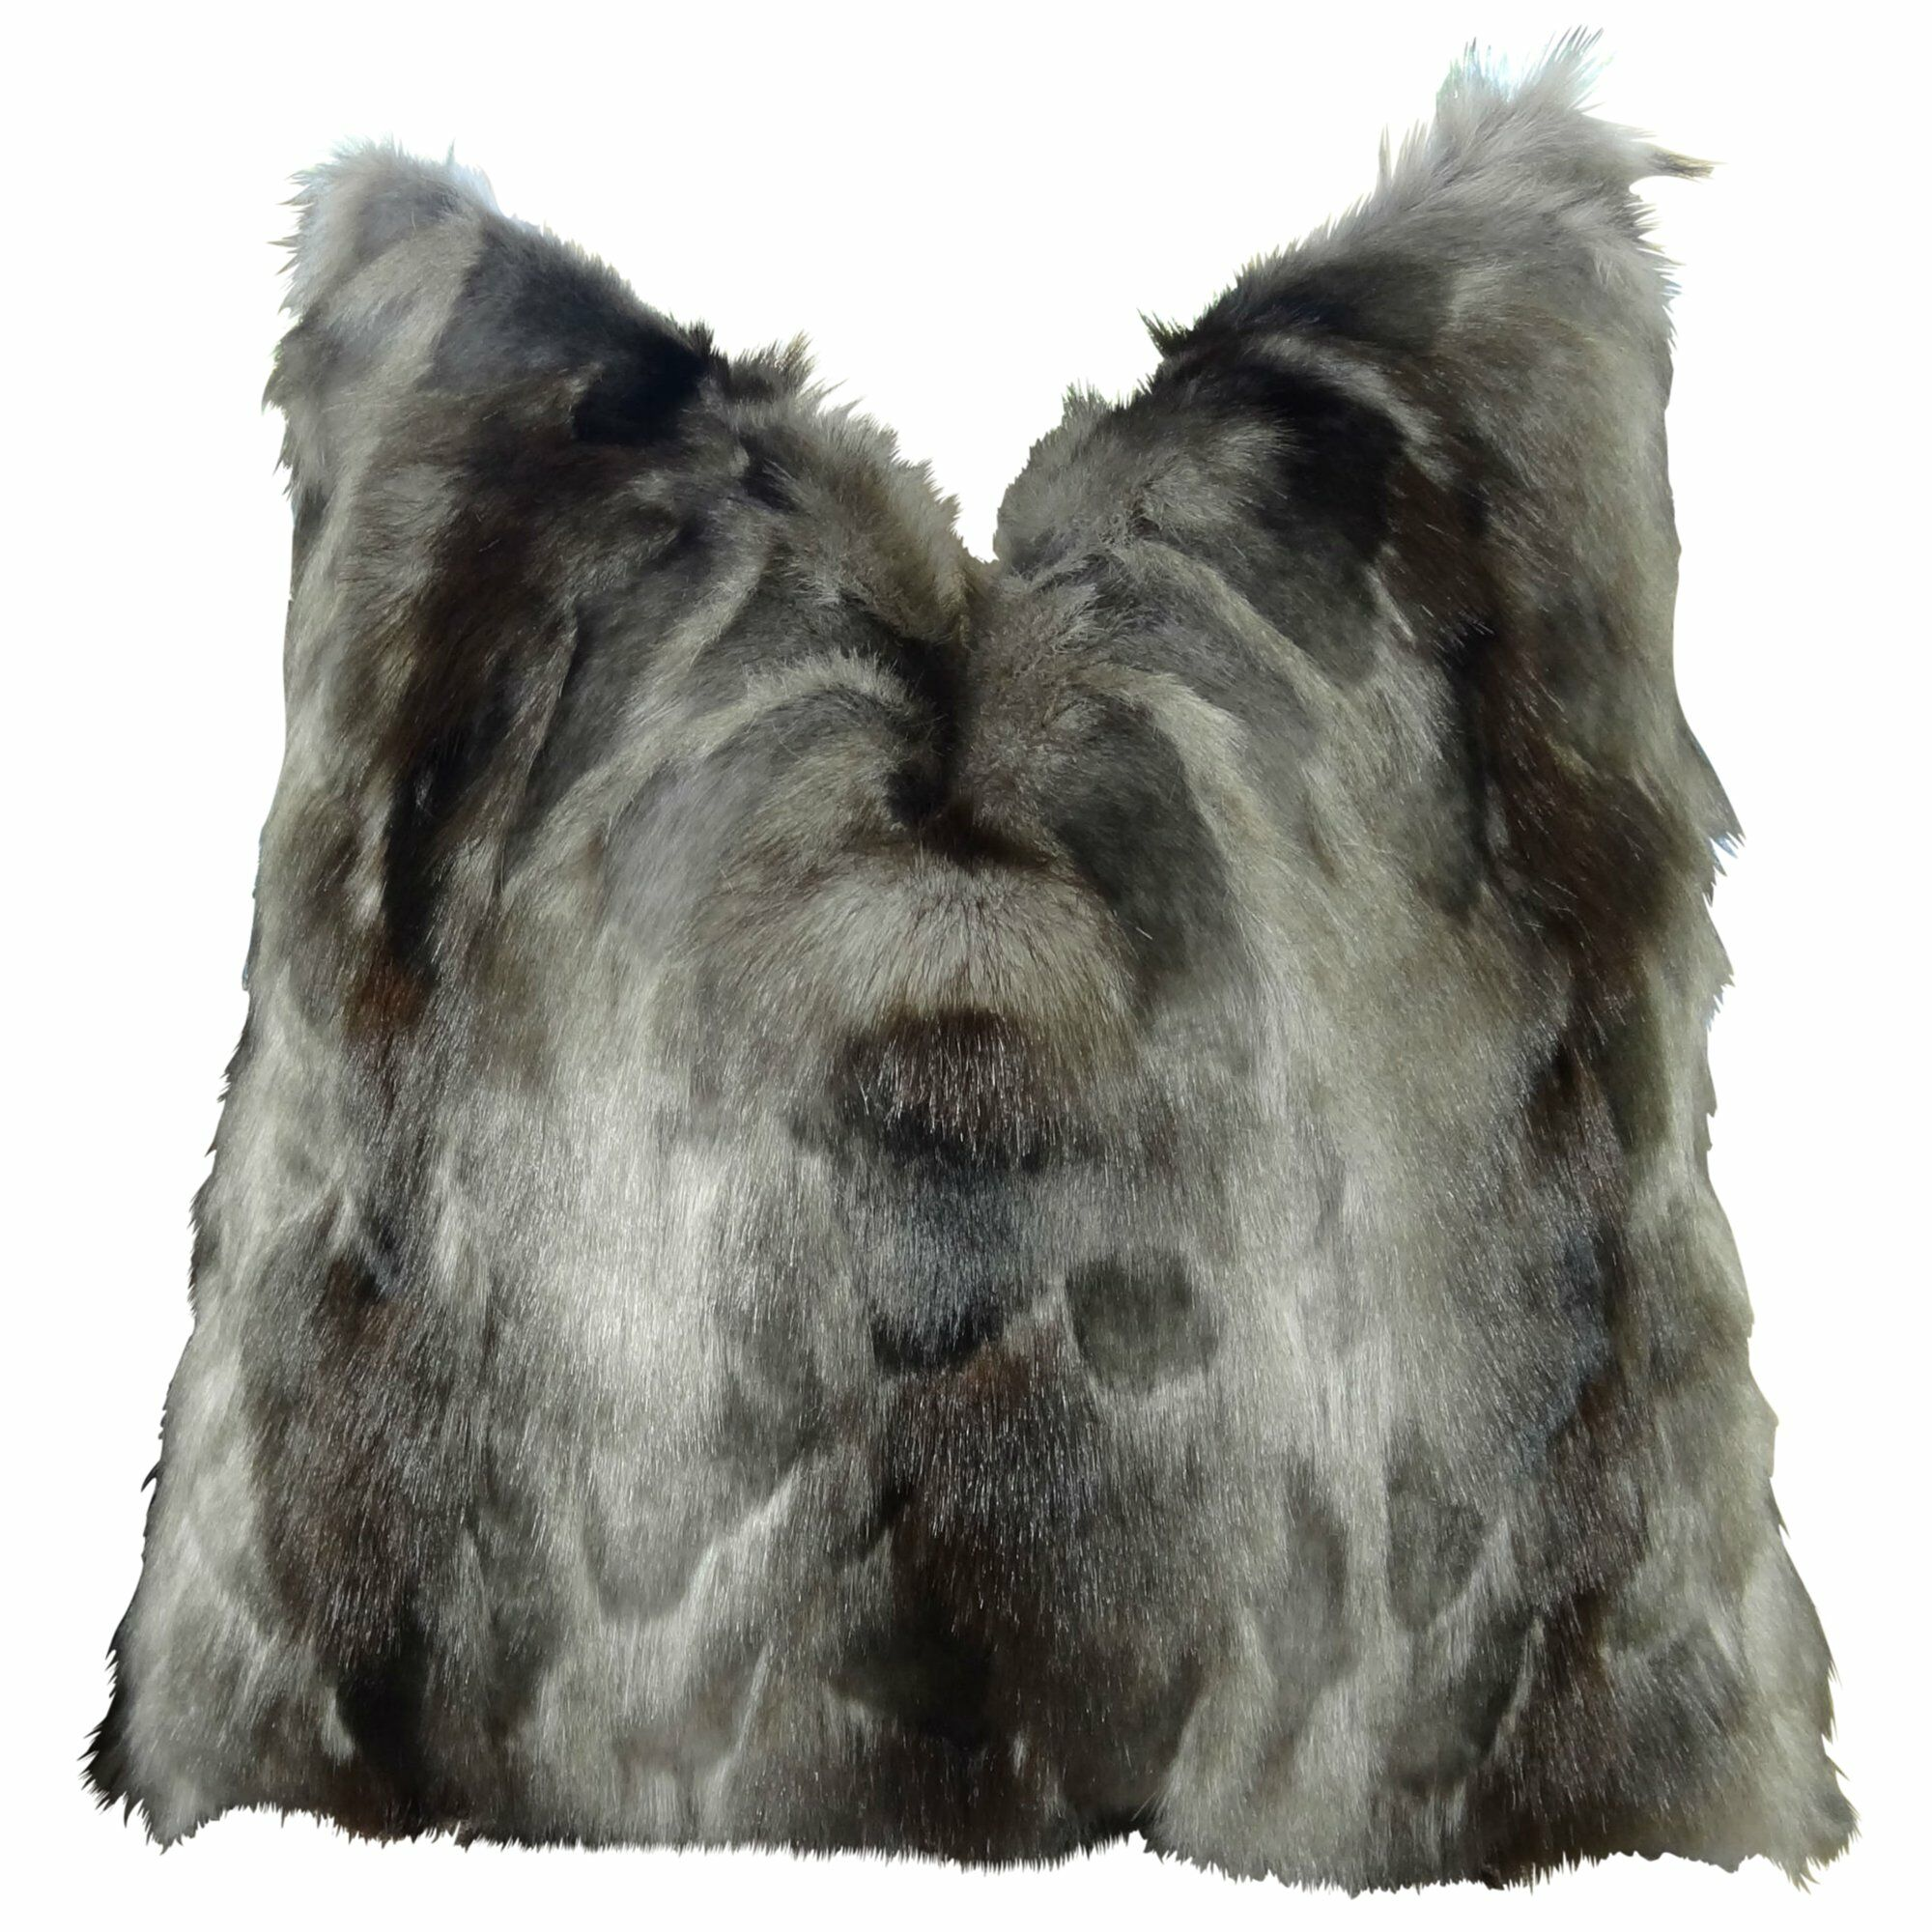 Wagenen Fox Faux Fur Pillow Fill Material: Cover Only - No Insert, Size: 16